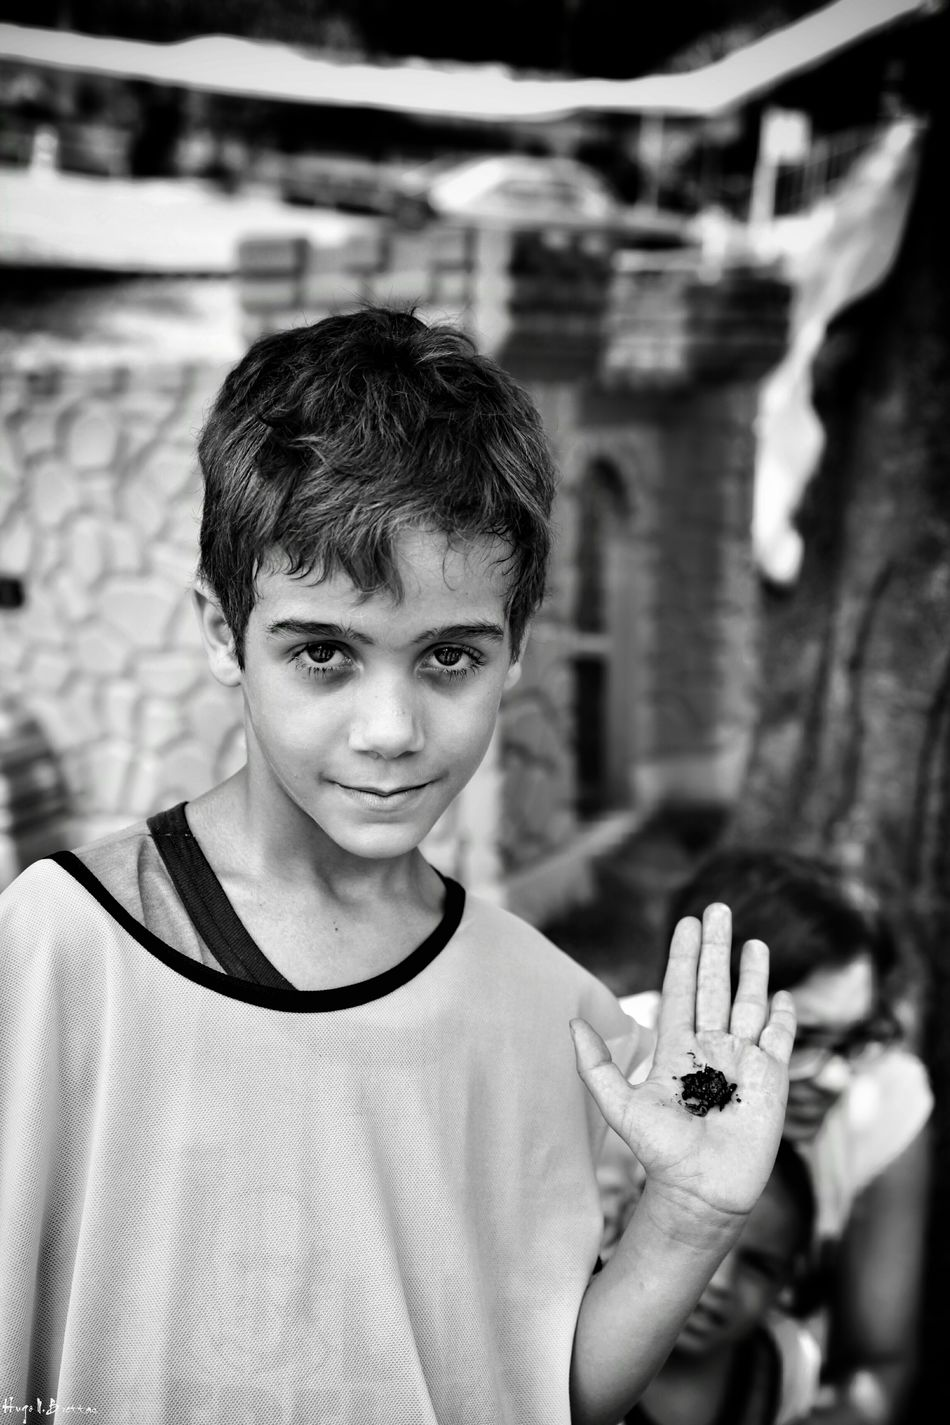 Portrait Looking At Camera One Person Real People Smiling Front View Leisure Activity Lifestyles Childhood Happiness Cheerful Freshness Children Photography Social Documentary School Children Black And White Black & White Social Photography Boys Photography